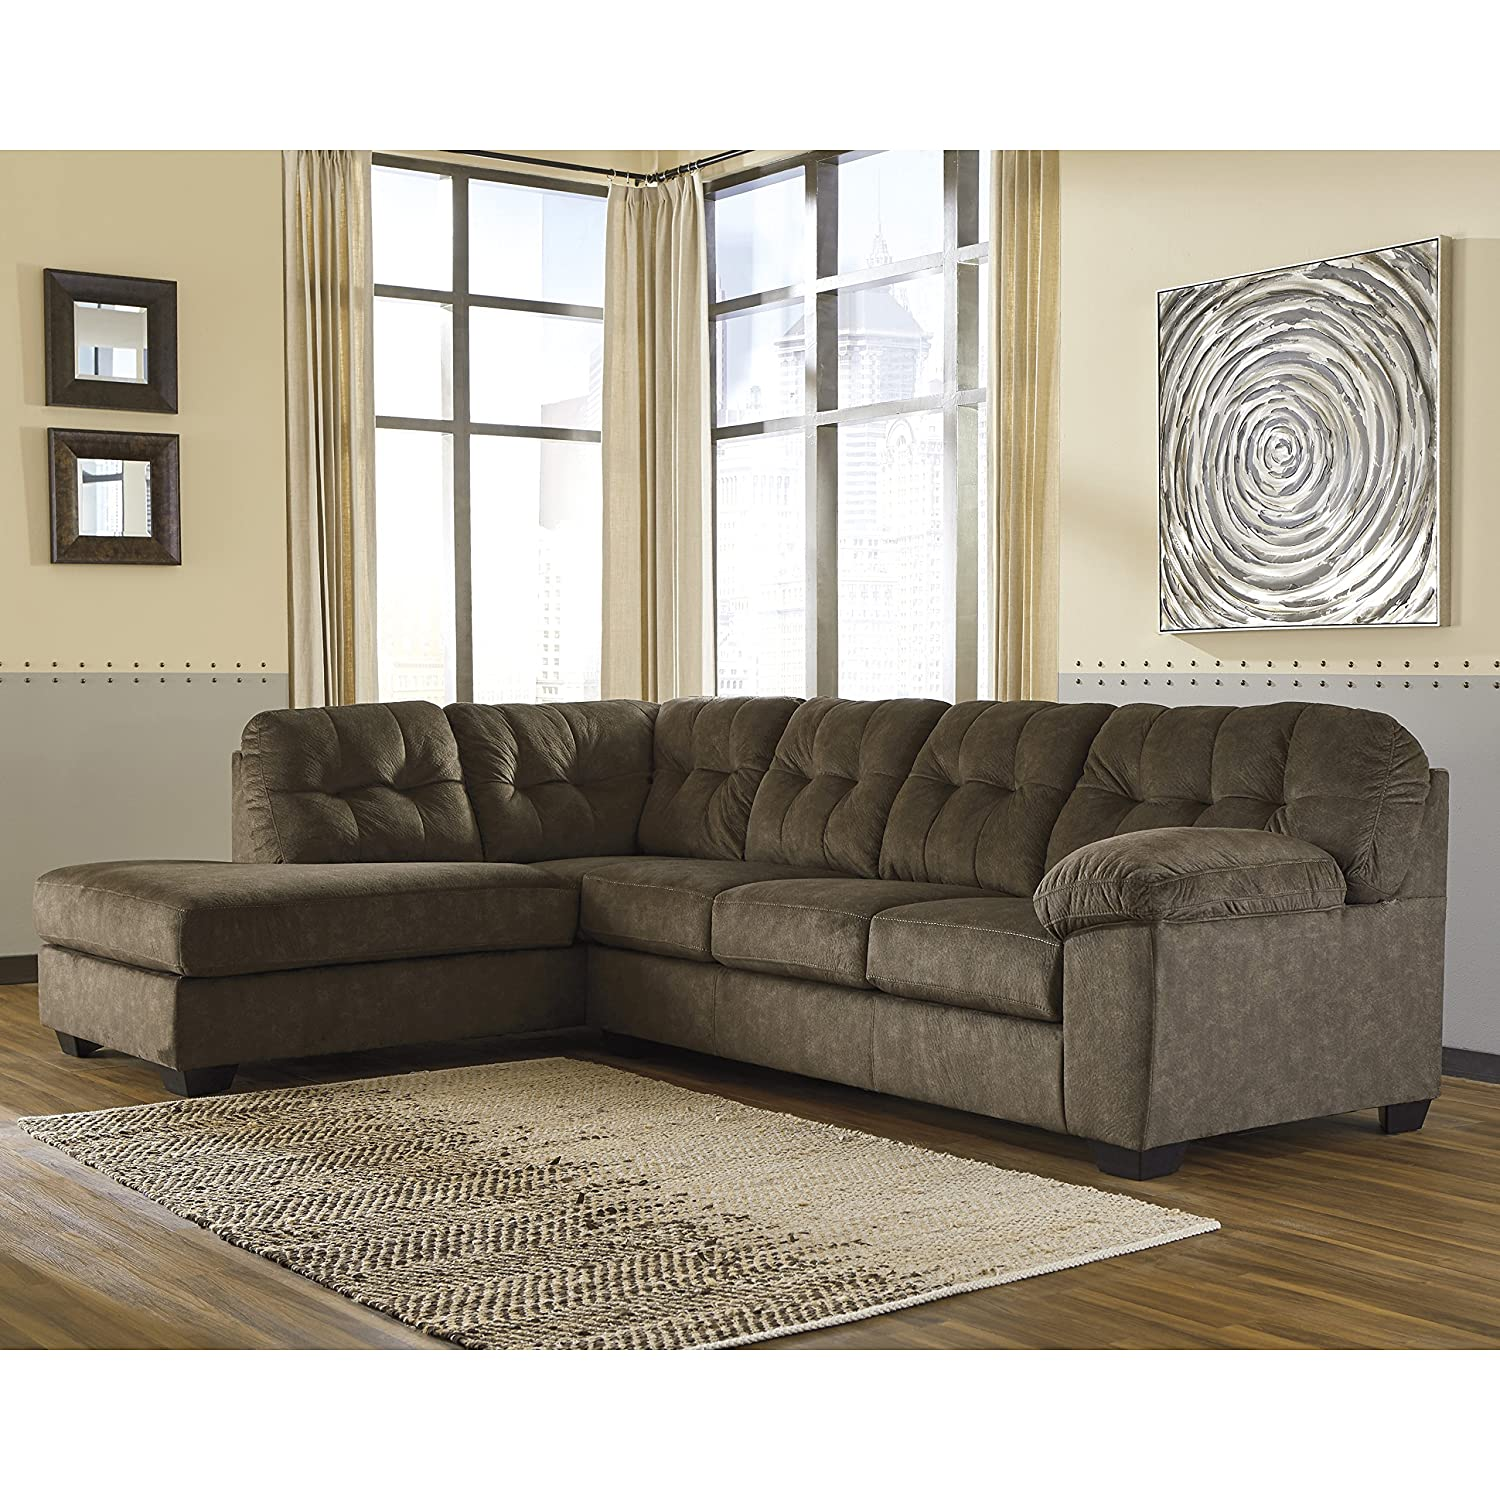 Amazoncom Flash Furniture Signature Design By Ashley Accrington 2